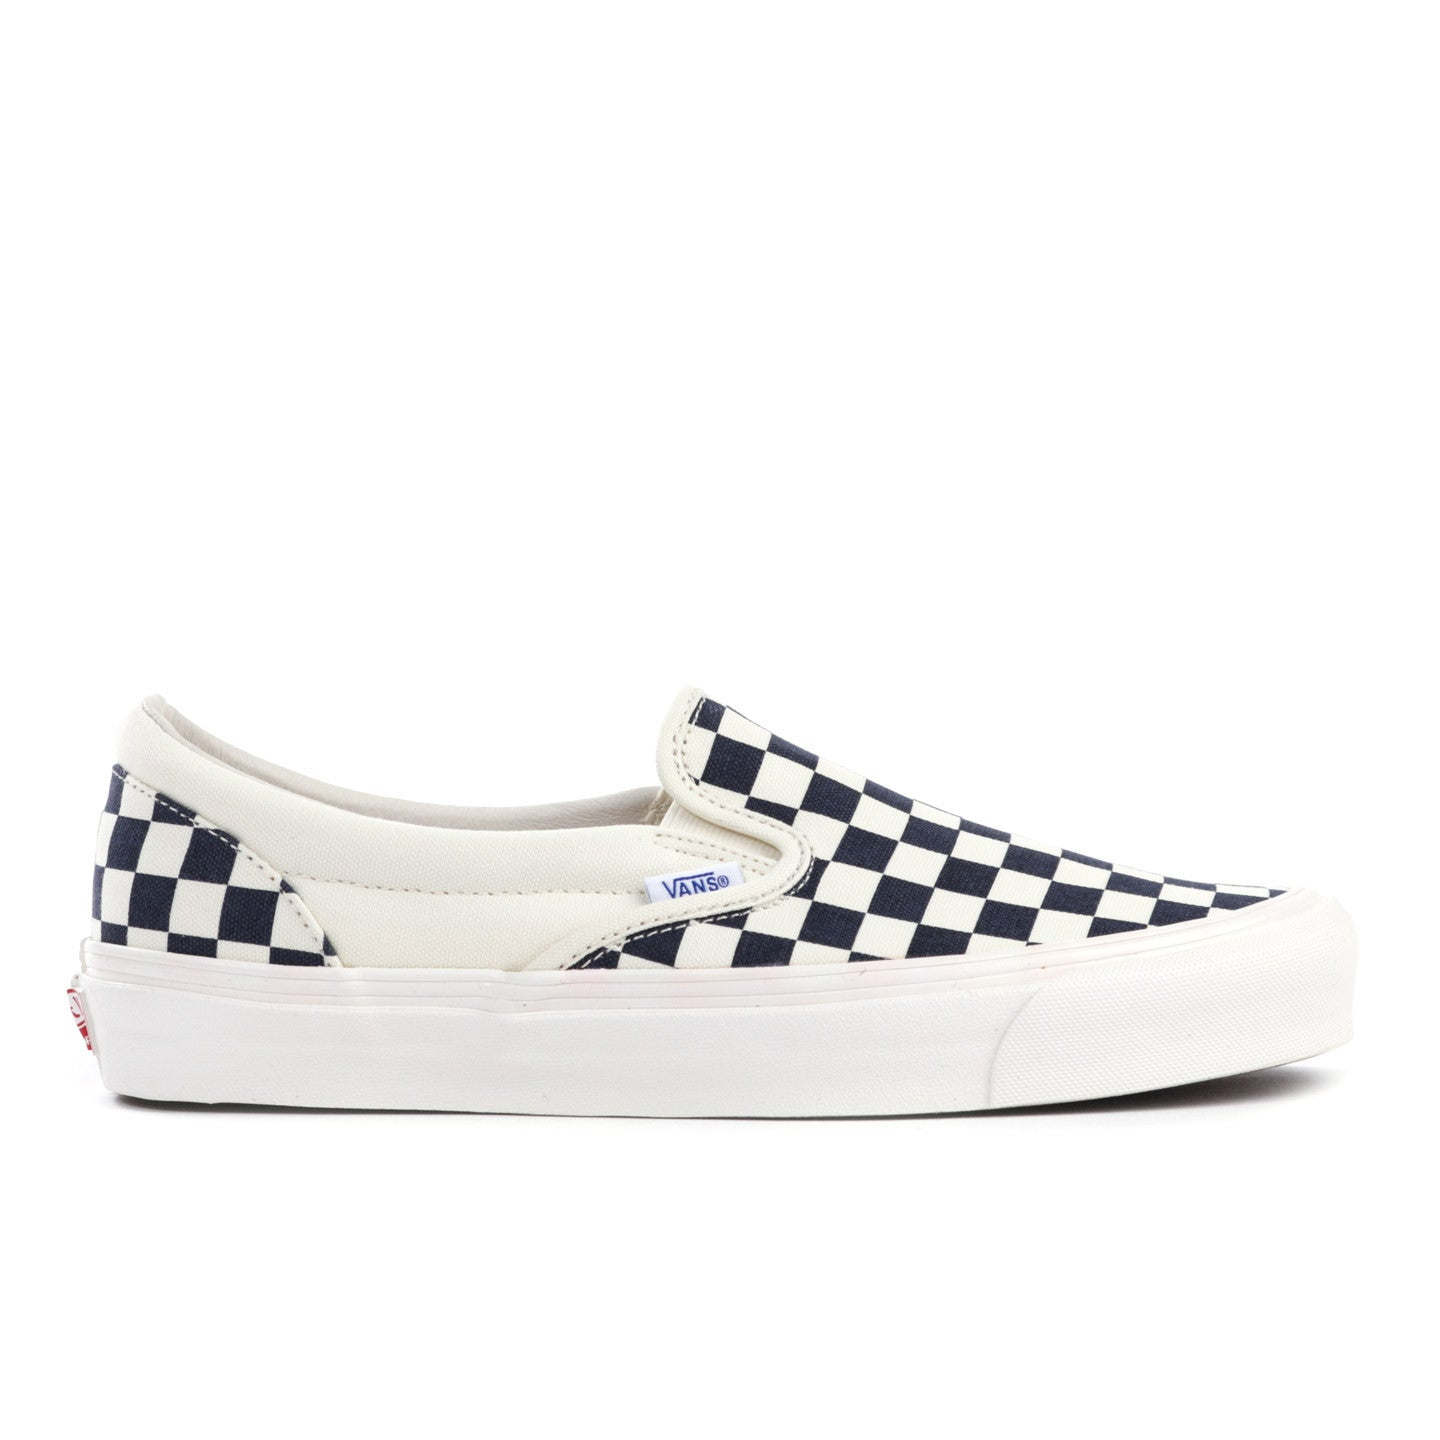 c80ff01fa1 VAULT BY VANS OG CLASSIC SLIP-ON LX NAVY CHECKERBOARD CANVAS